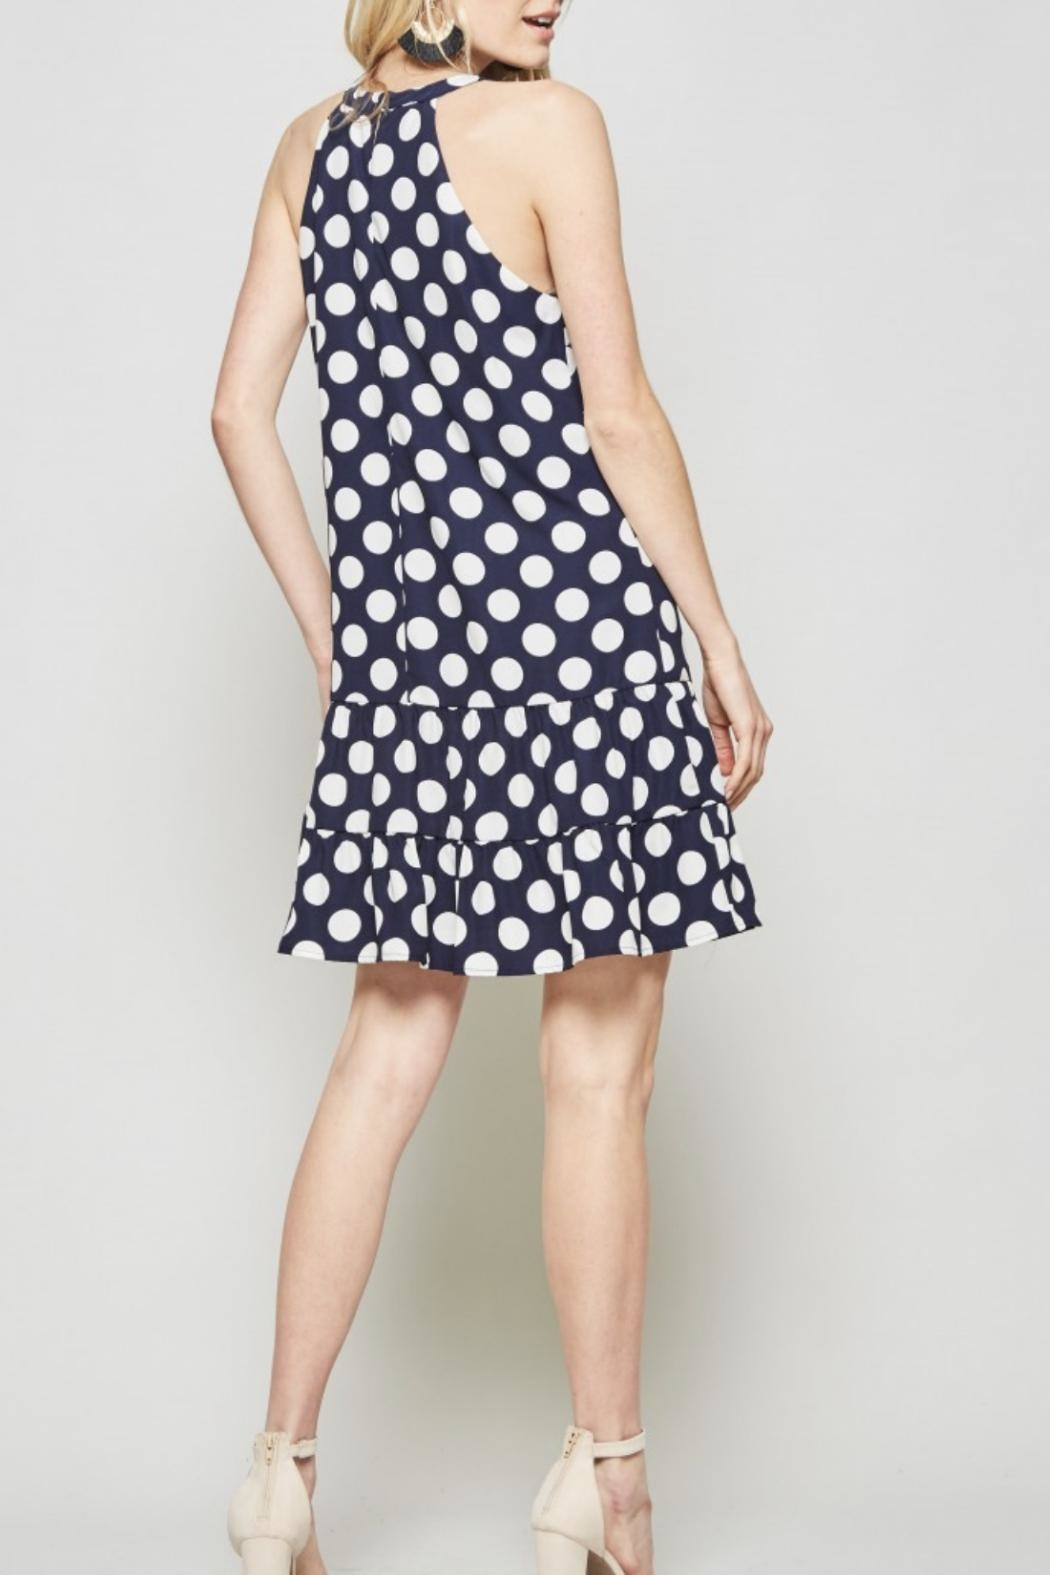 Andree by Unit Polkadot Navy Dress - Side Cropped Image